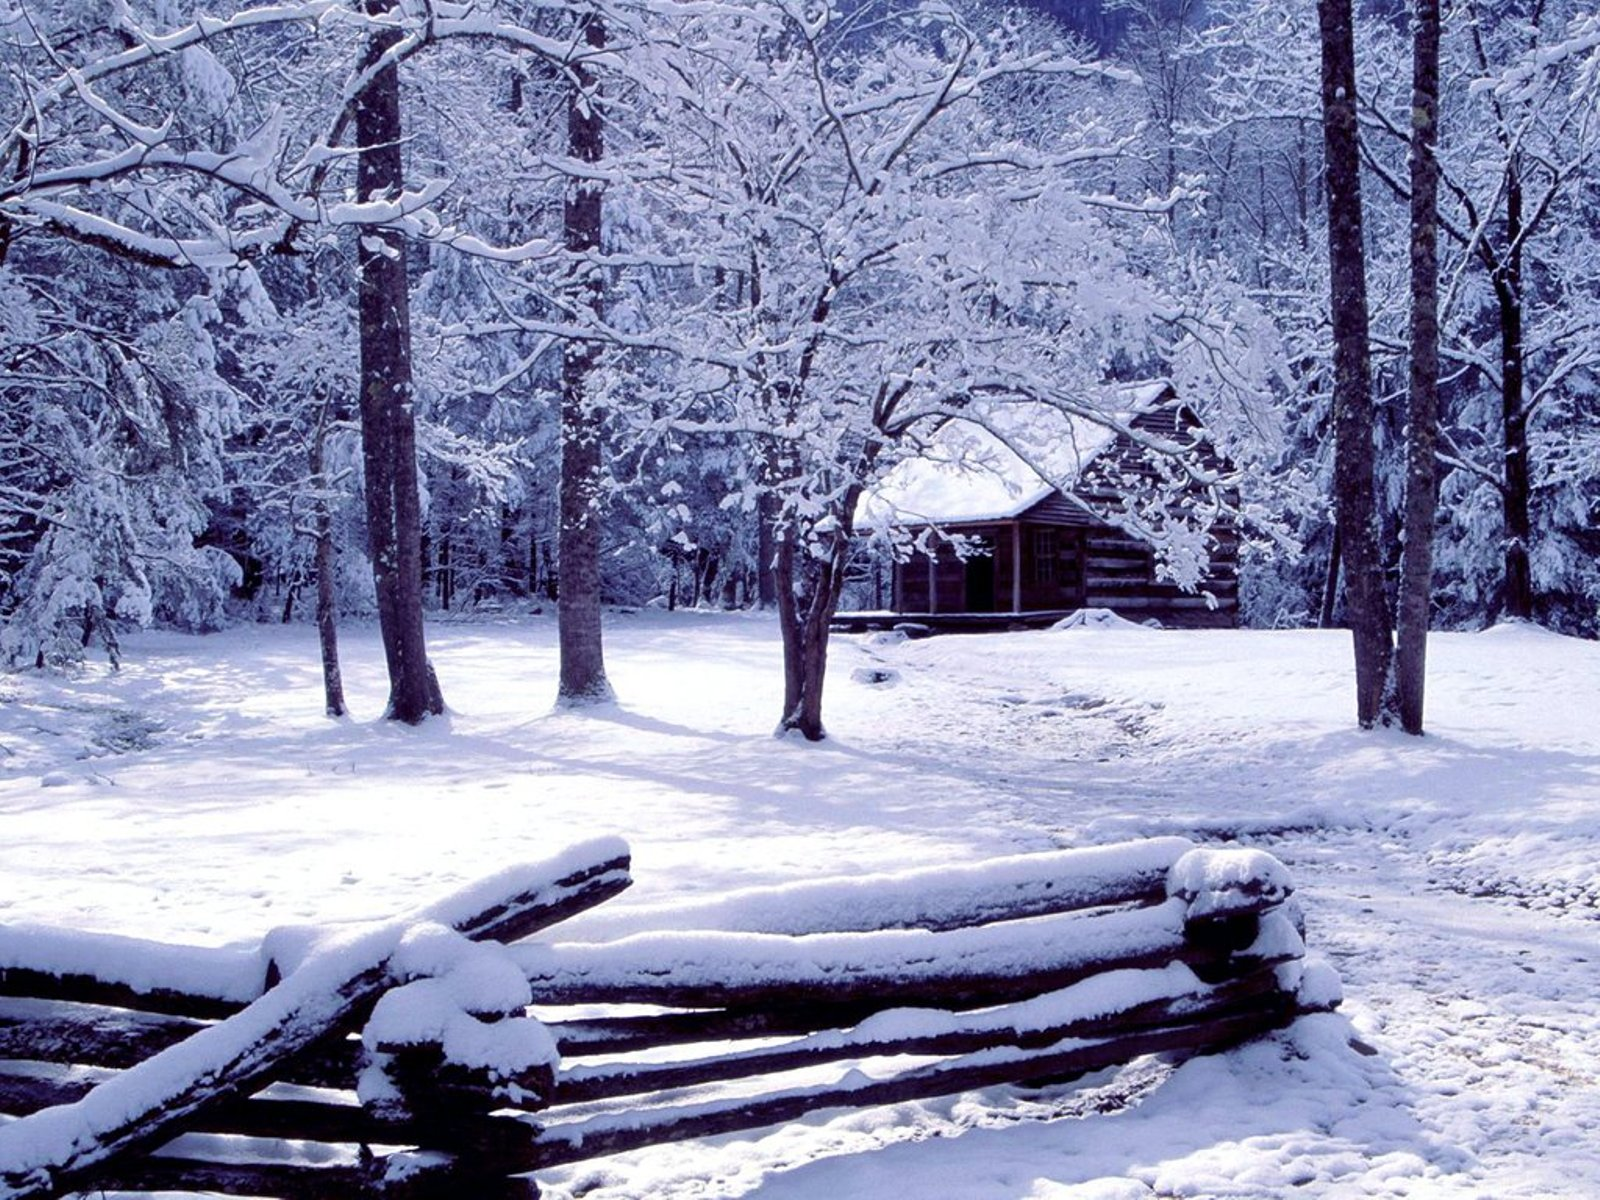 Winter Wallpaper Scenes With Cabins winter scenery winter scenery winter scenery winter scenery